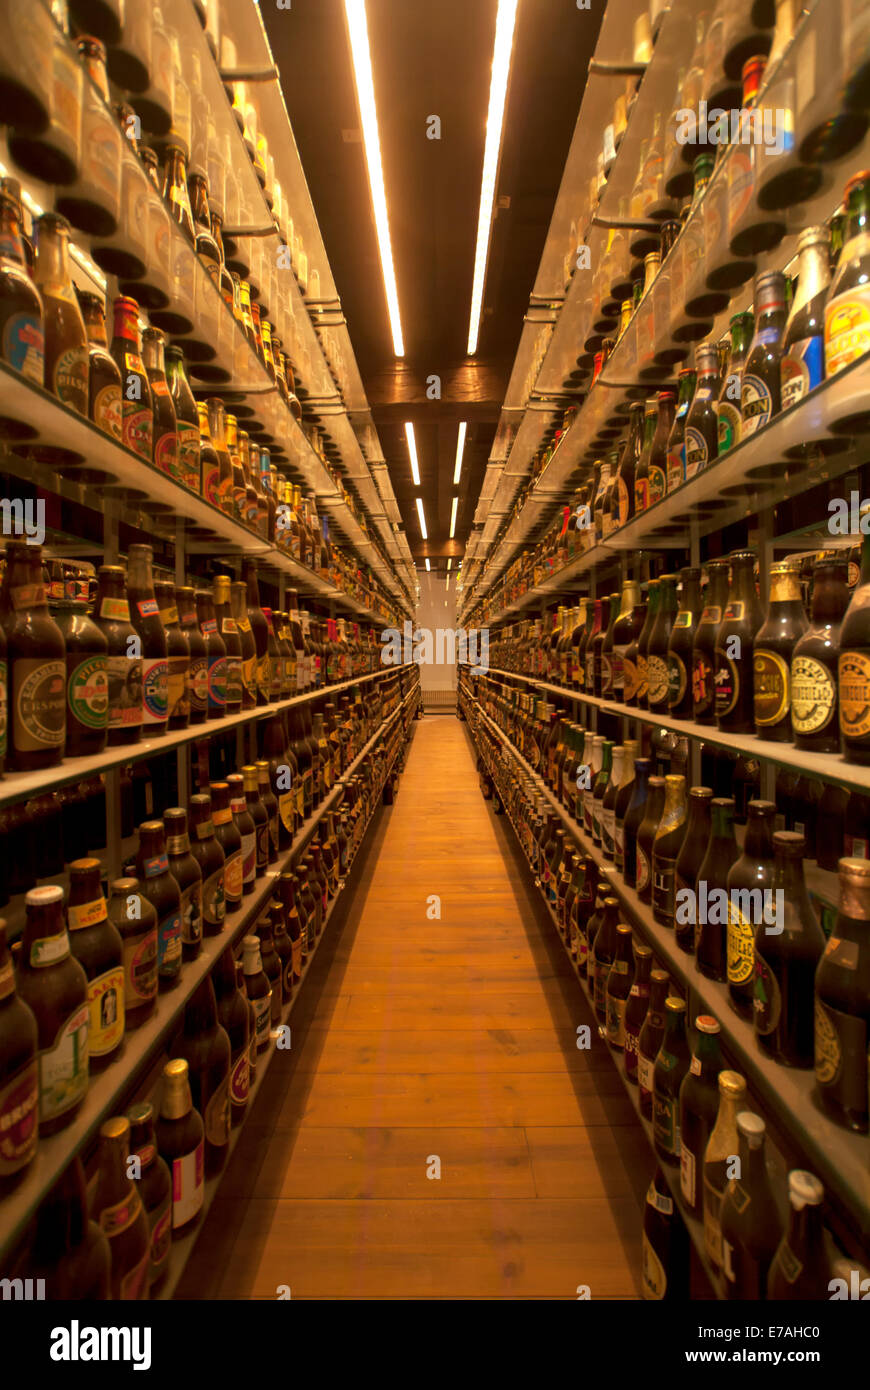 World's largest beer bottle collection at Carlsberg museum brewery. - Stock Image